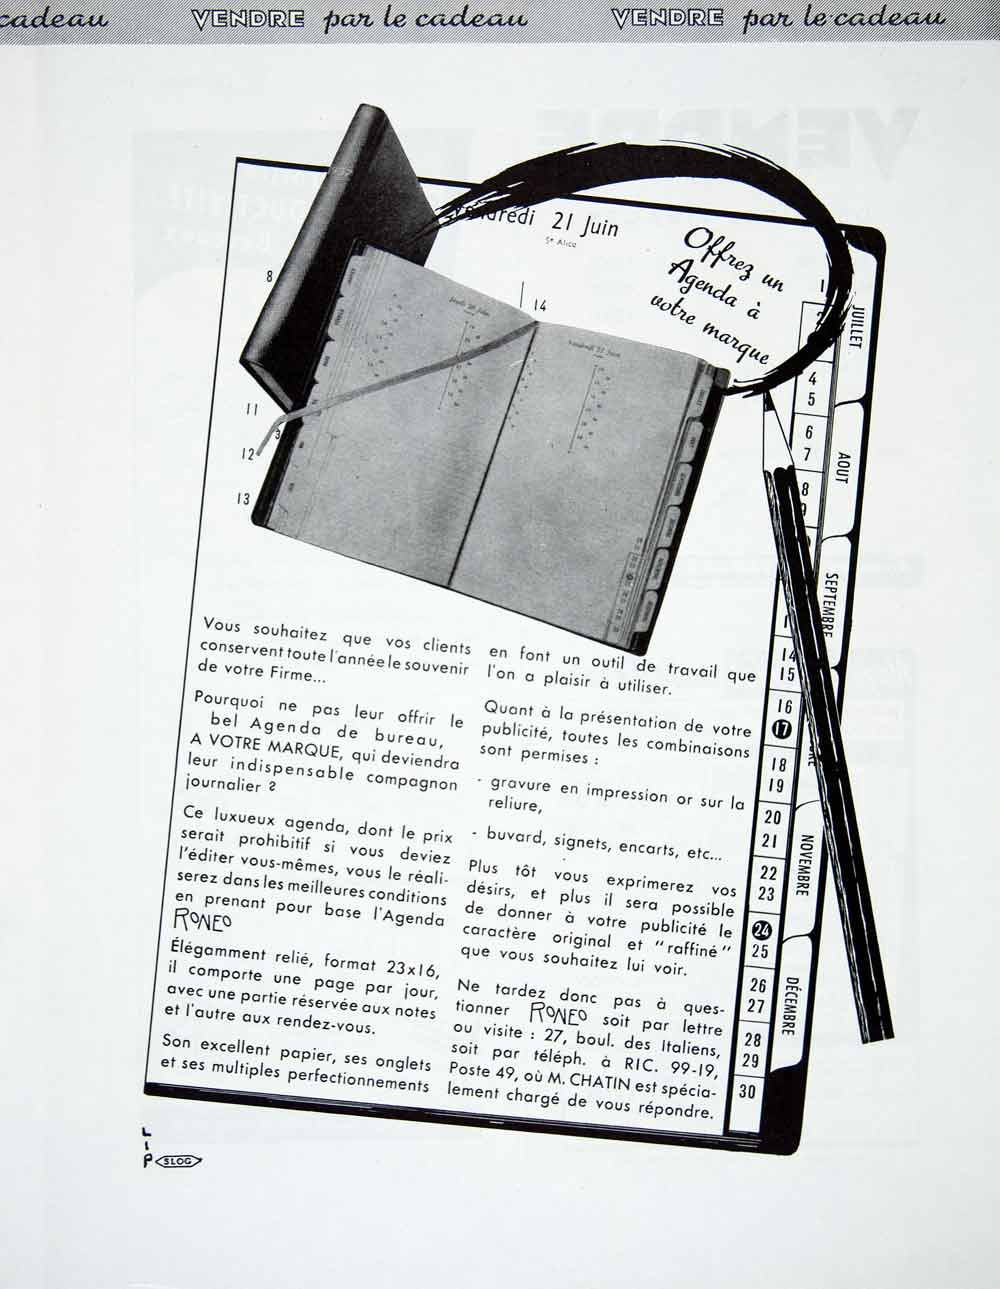 1956 Ad Agenda Branded Gift French Roneo Office Supplies Day Planner Pencil VEN6